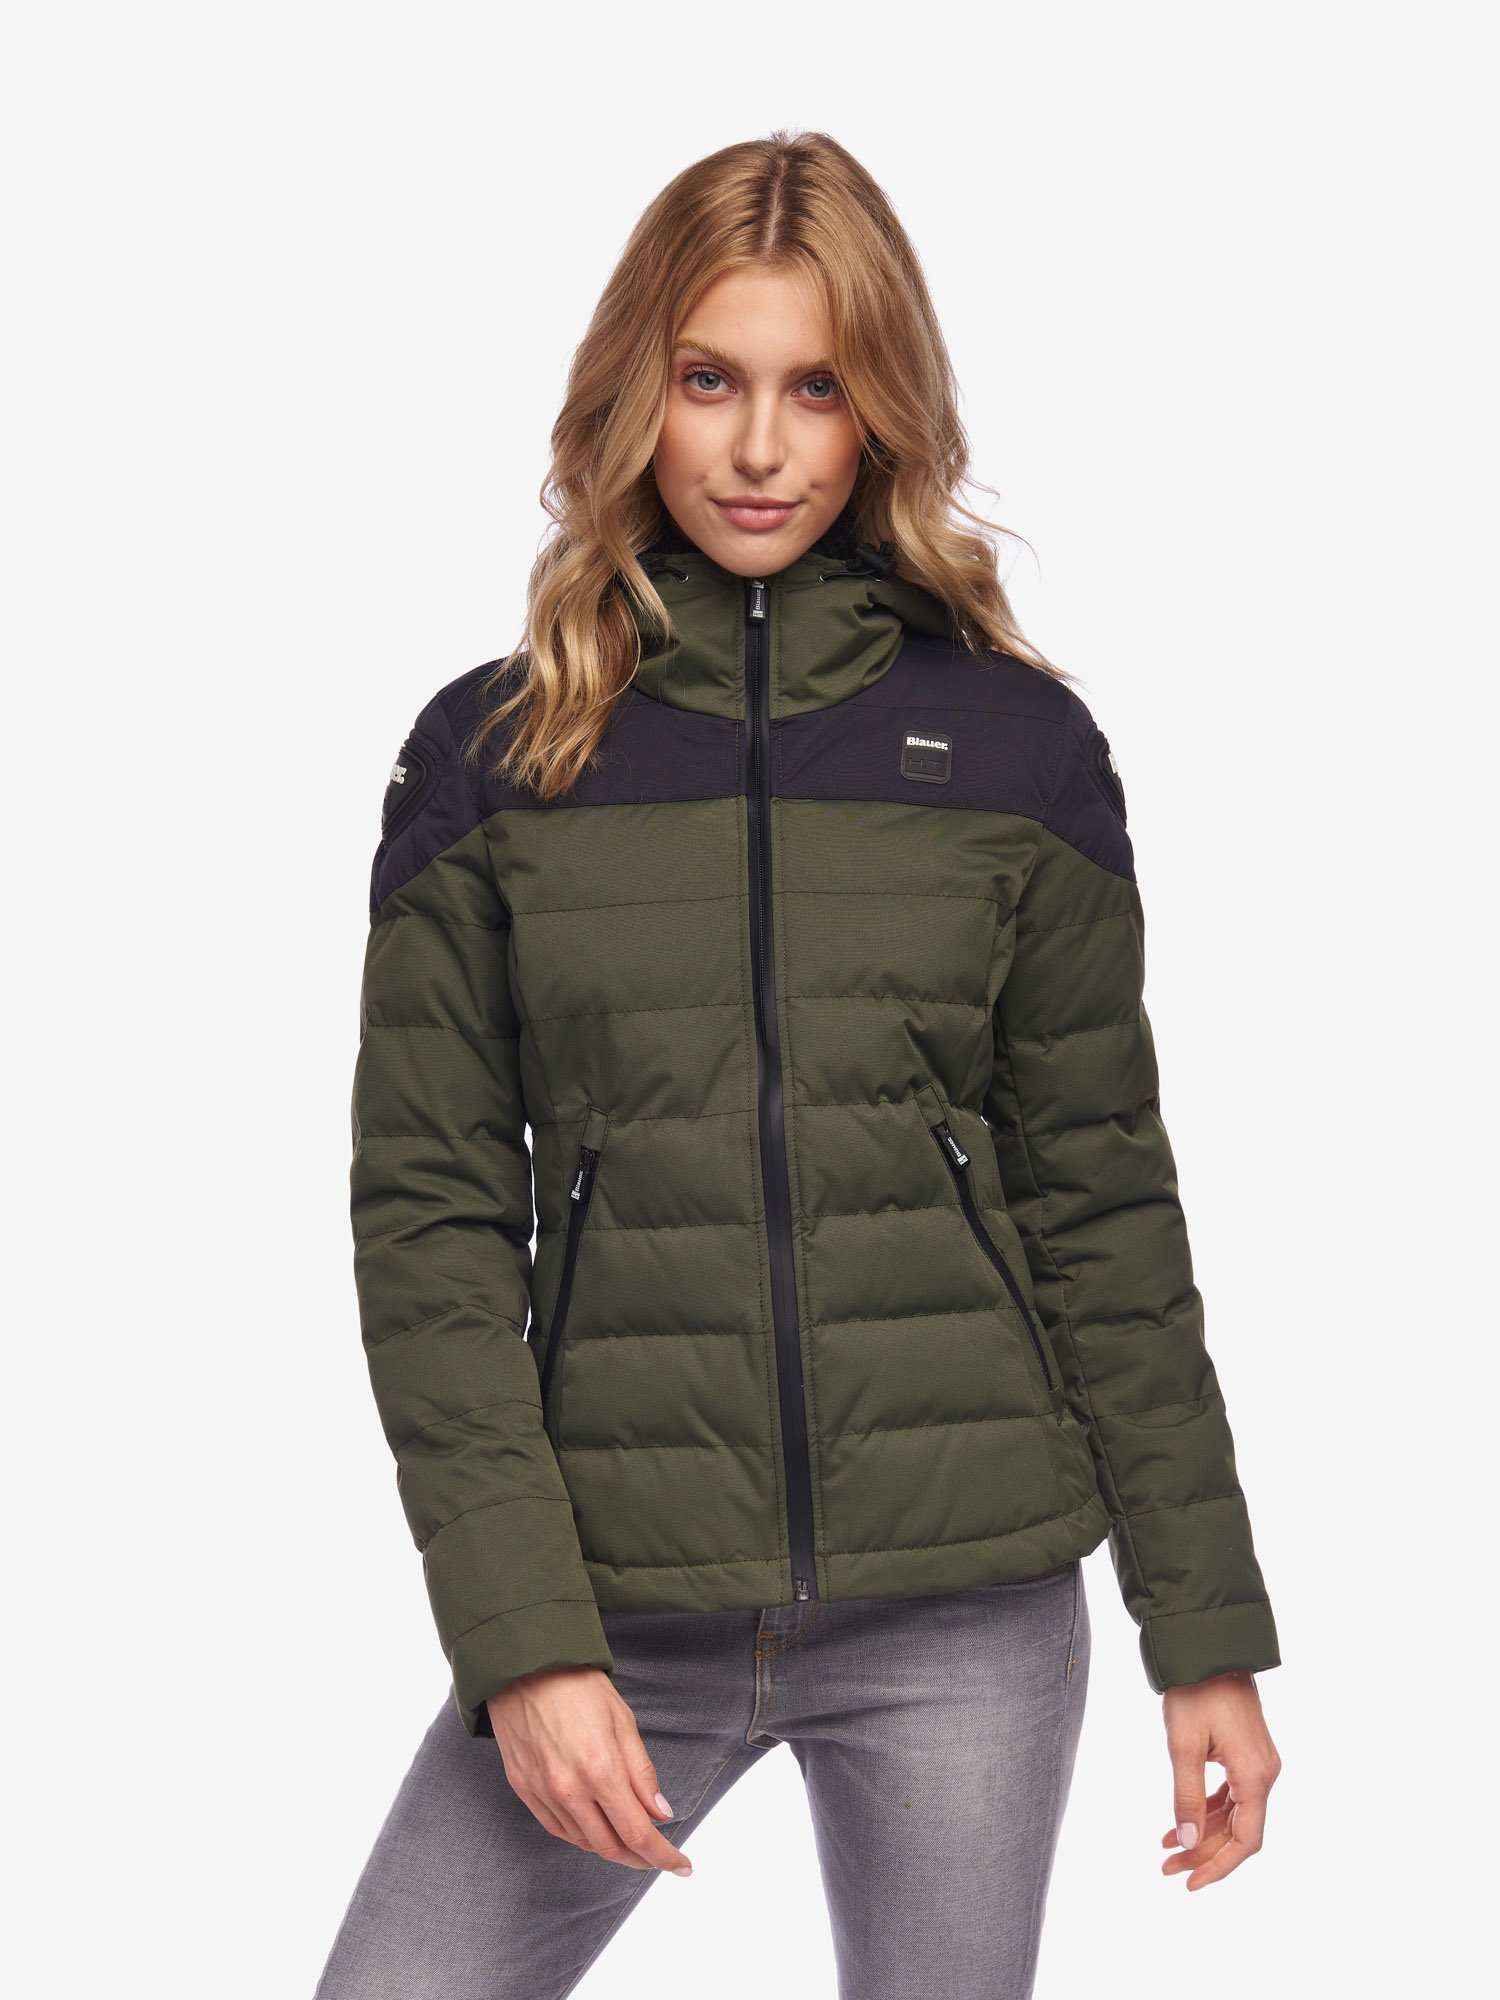 EASY WINTER DAMEN 2.0 - Blauer